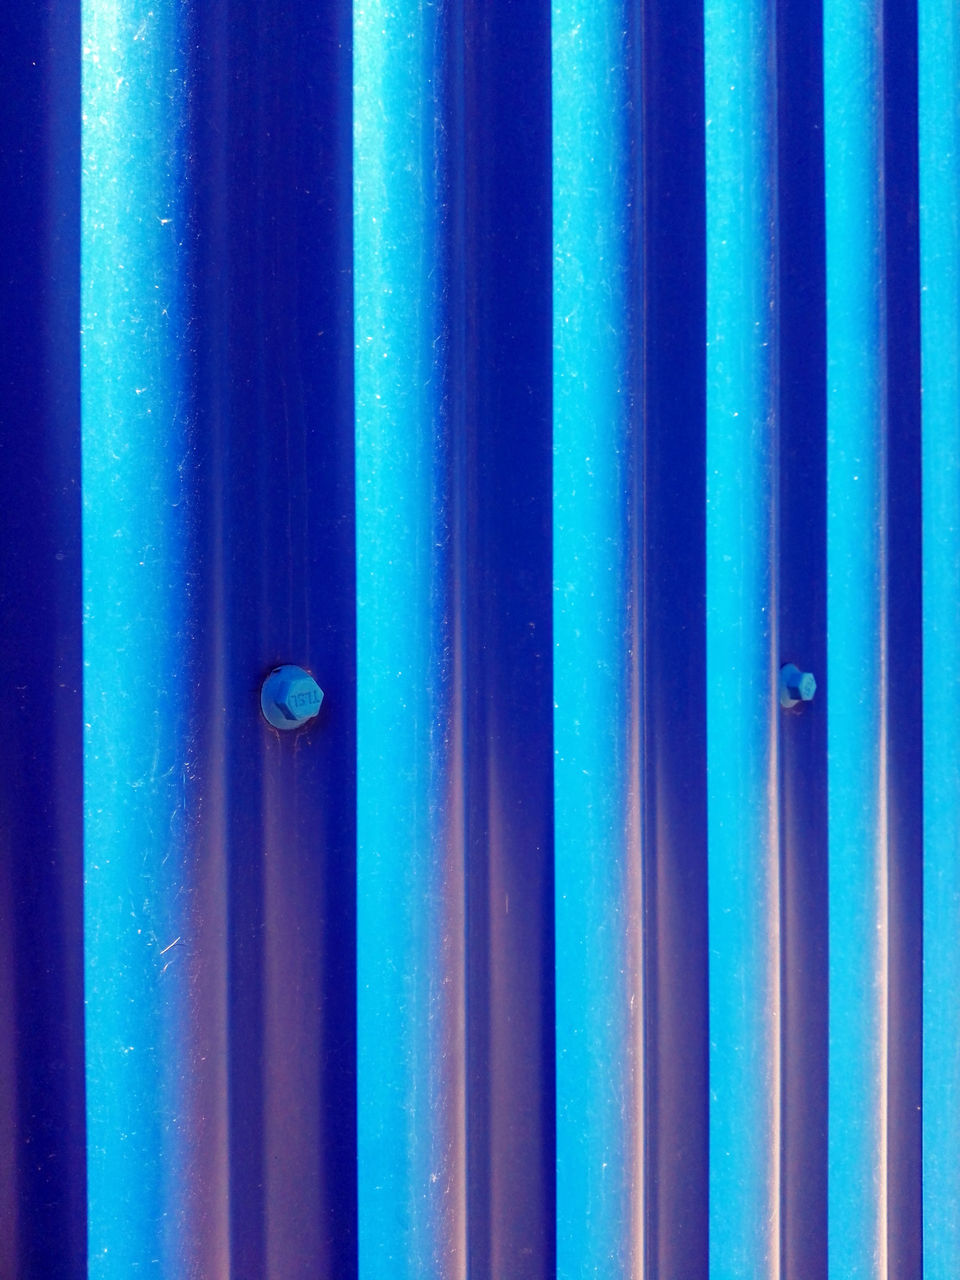 full frame, backgrounds, blue, metal, pattern, no people, close-up, textured, day, outdoors, corrugated iron